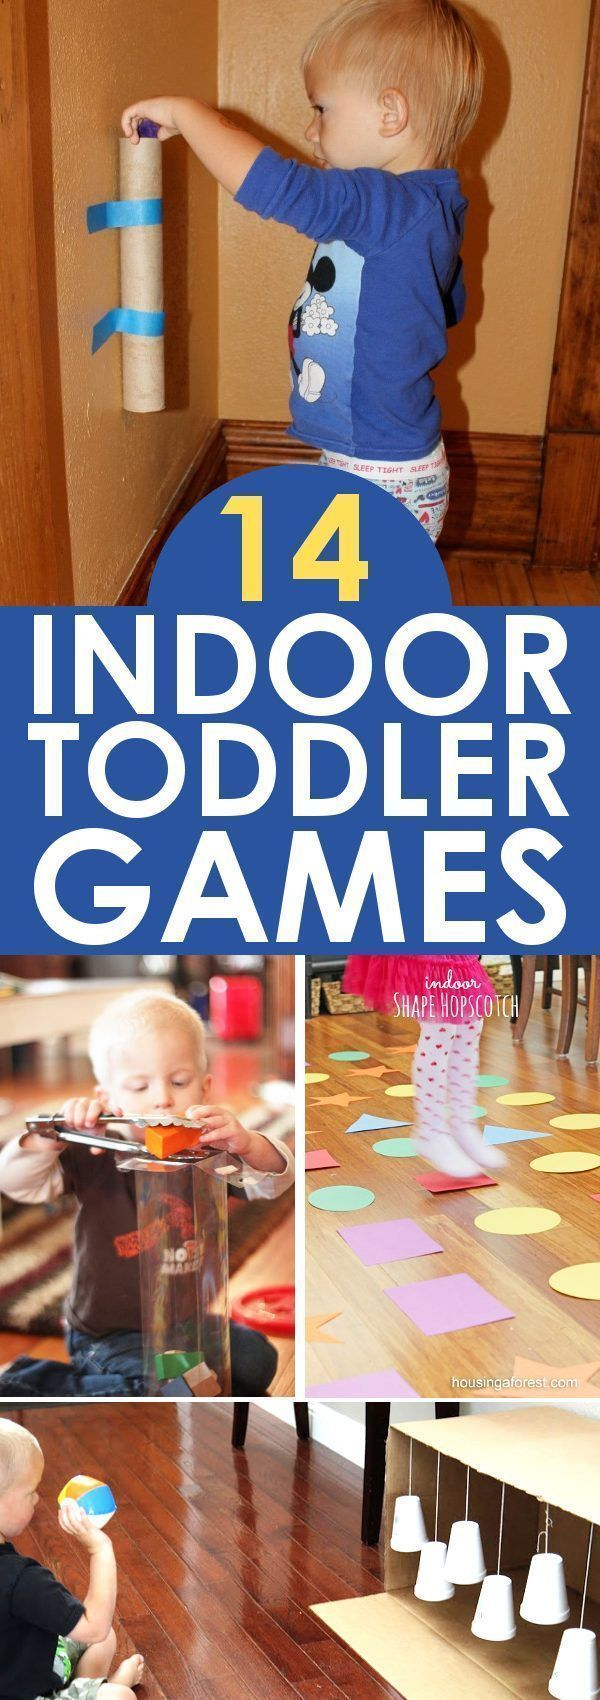 TODDLER ACTIVITIES: These indoor toddler games are great to have on hand for any day where you just need an easy toddler activity. With these 14 toddl…